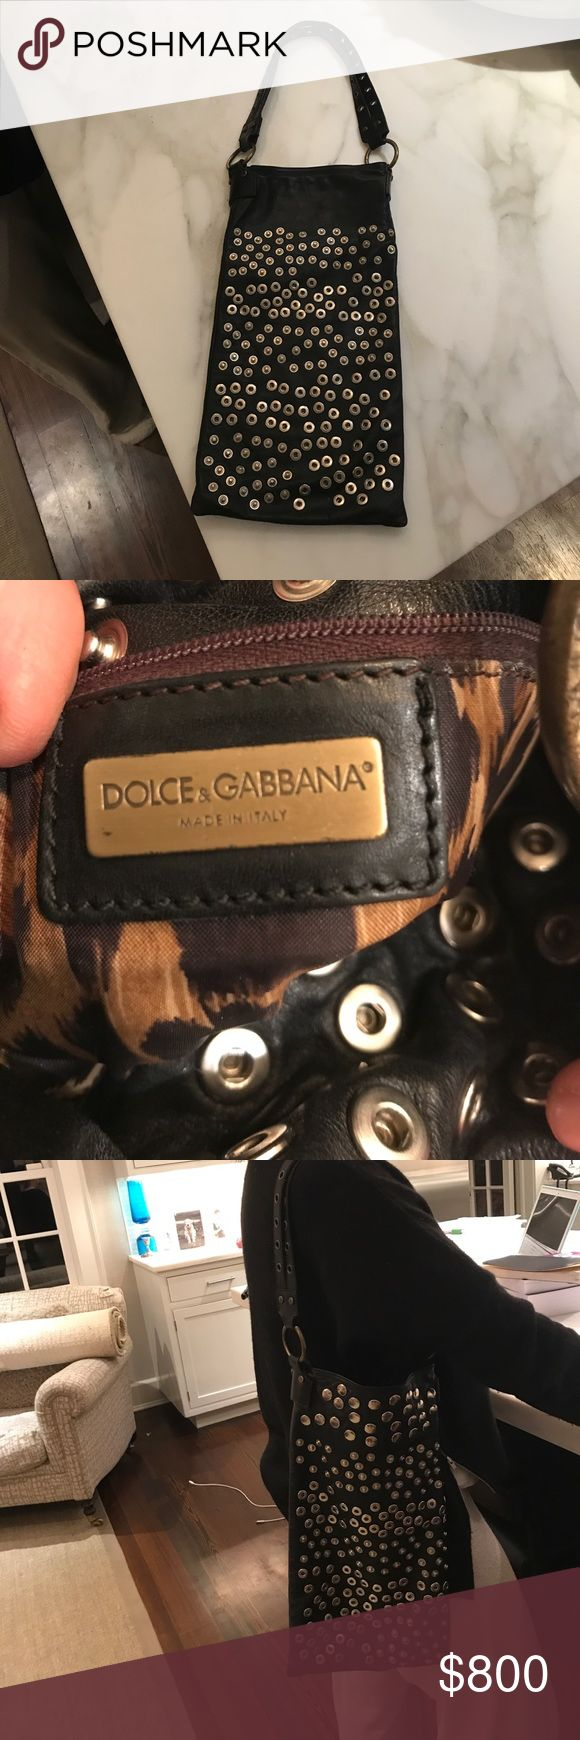 Dolce and Gabbana over the shoulder purse Trendy and funky purse from a runway show. Lightly worn. Leopard lining Dolce & Gabbana Bags Shoulder Bags